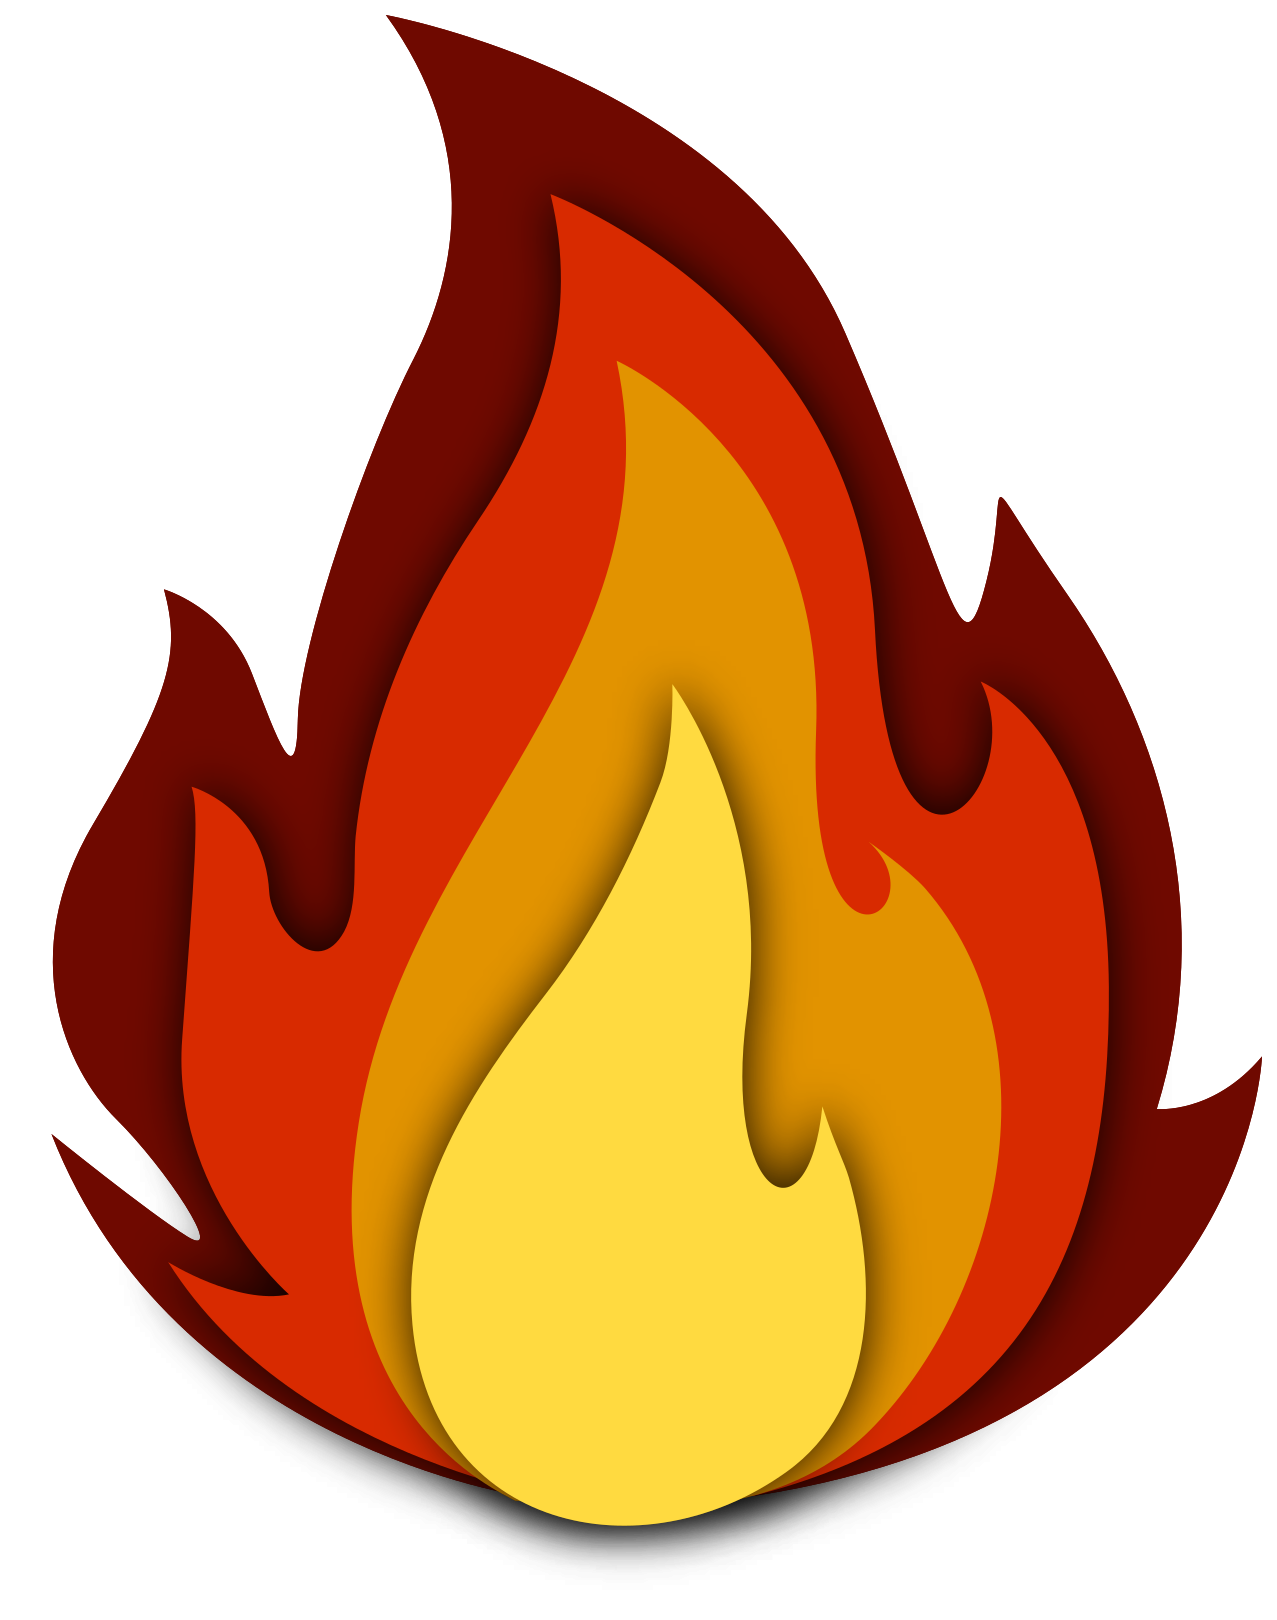 Free Fire 1188561 PNG with Transparent Background